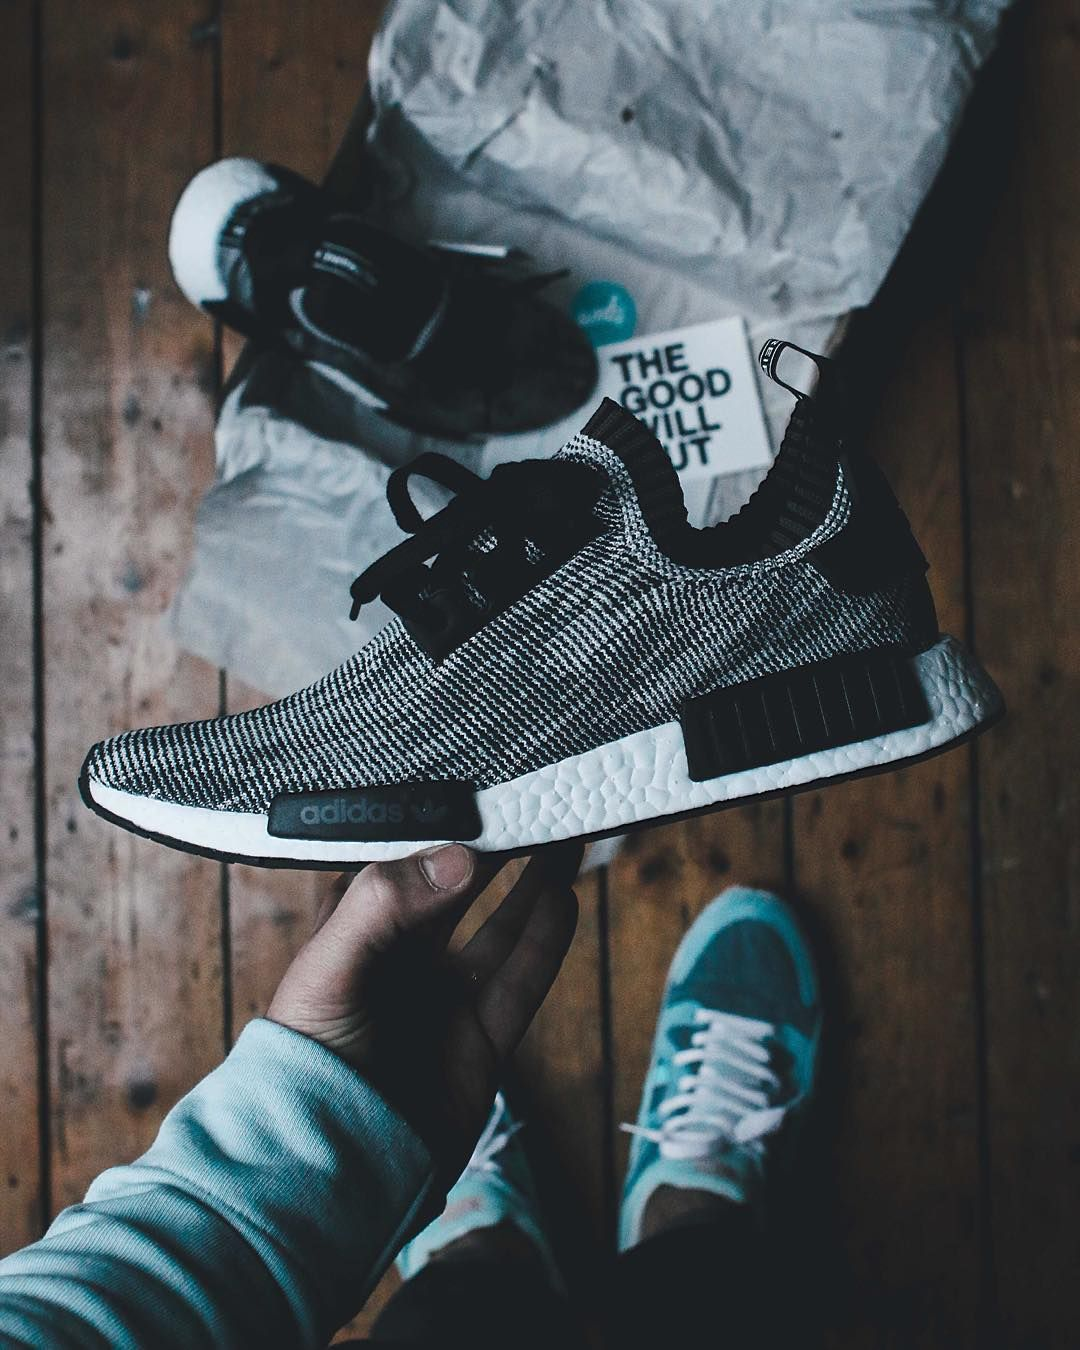 Sizetenplease On Instagram Adidas Nmd Runner R1 Finally In My Hand Big Thanks To Thegoodwillout Adidas Nmd Runner Sneakers Sneakers Men